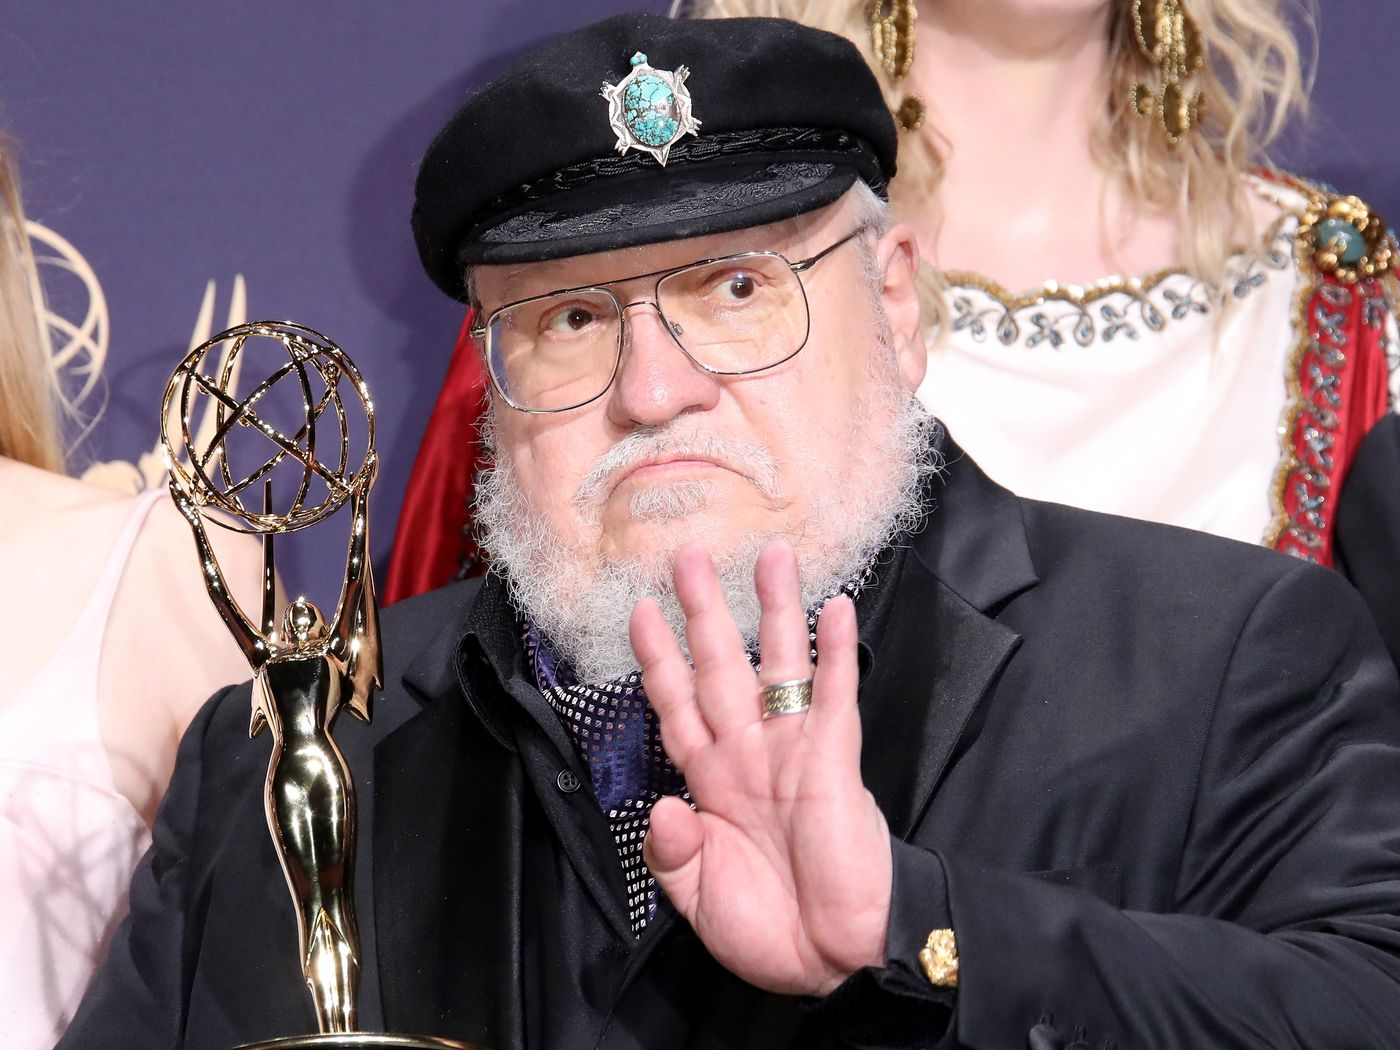 George R.R. Martin promises fans he is staying safe and working on ...